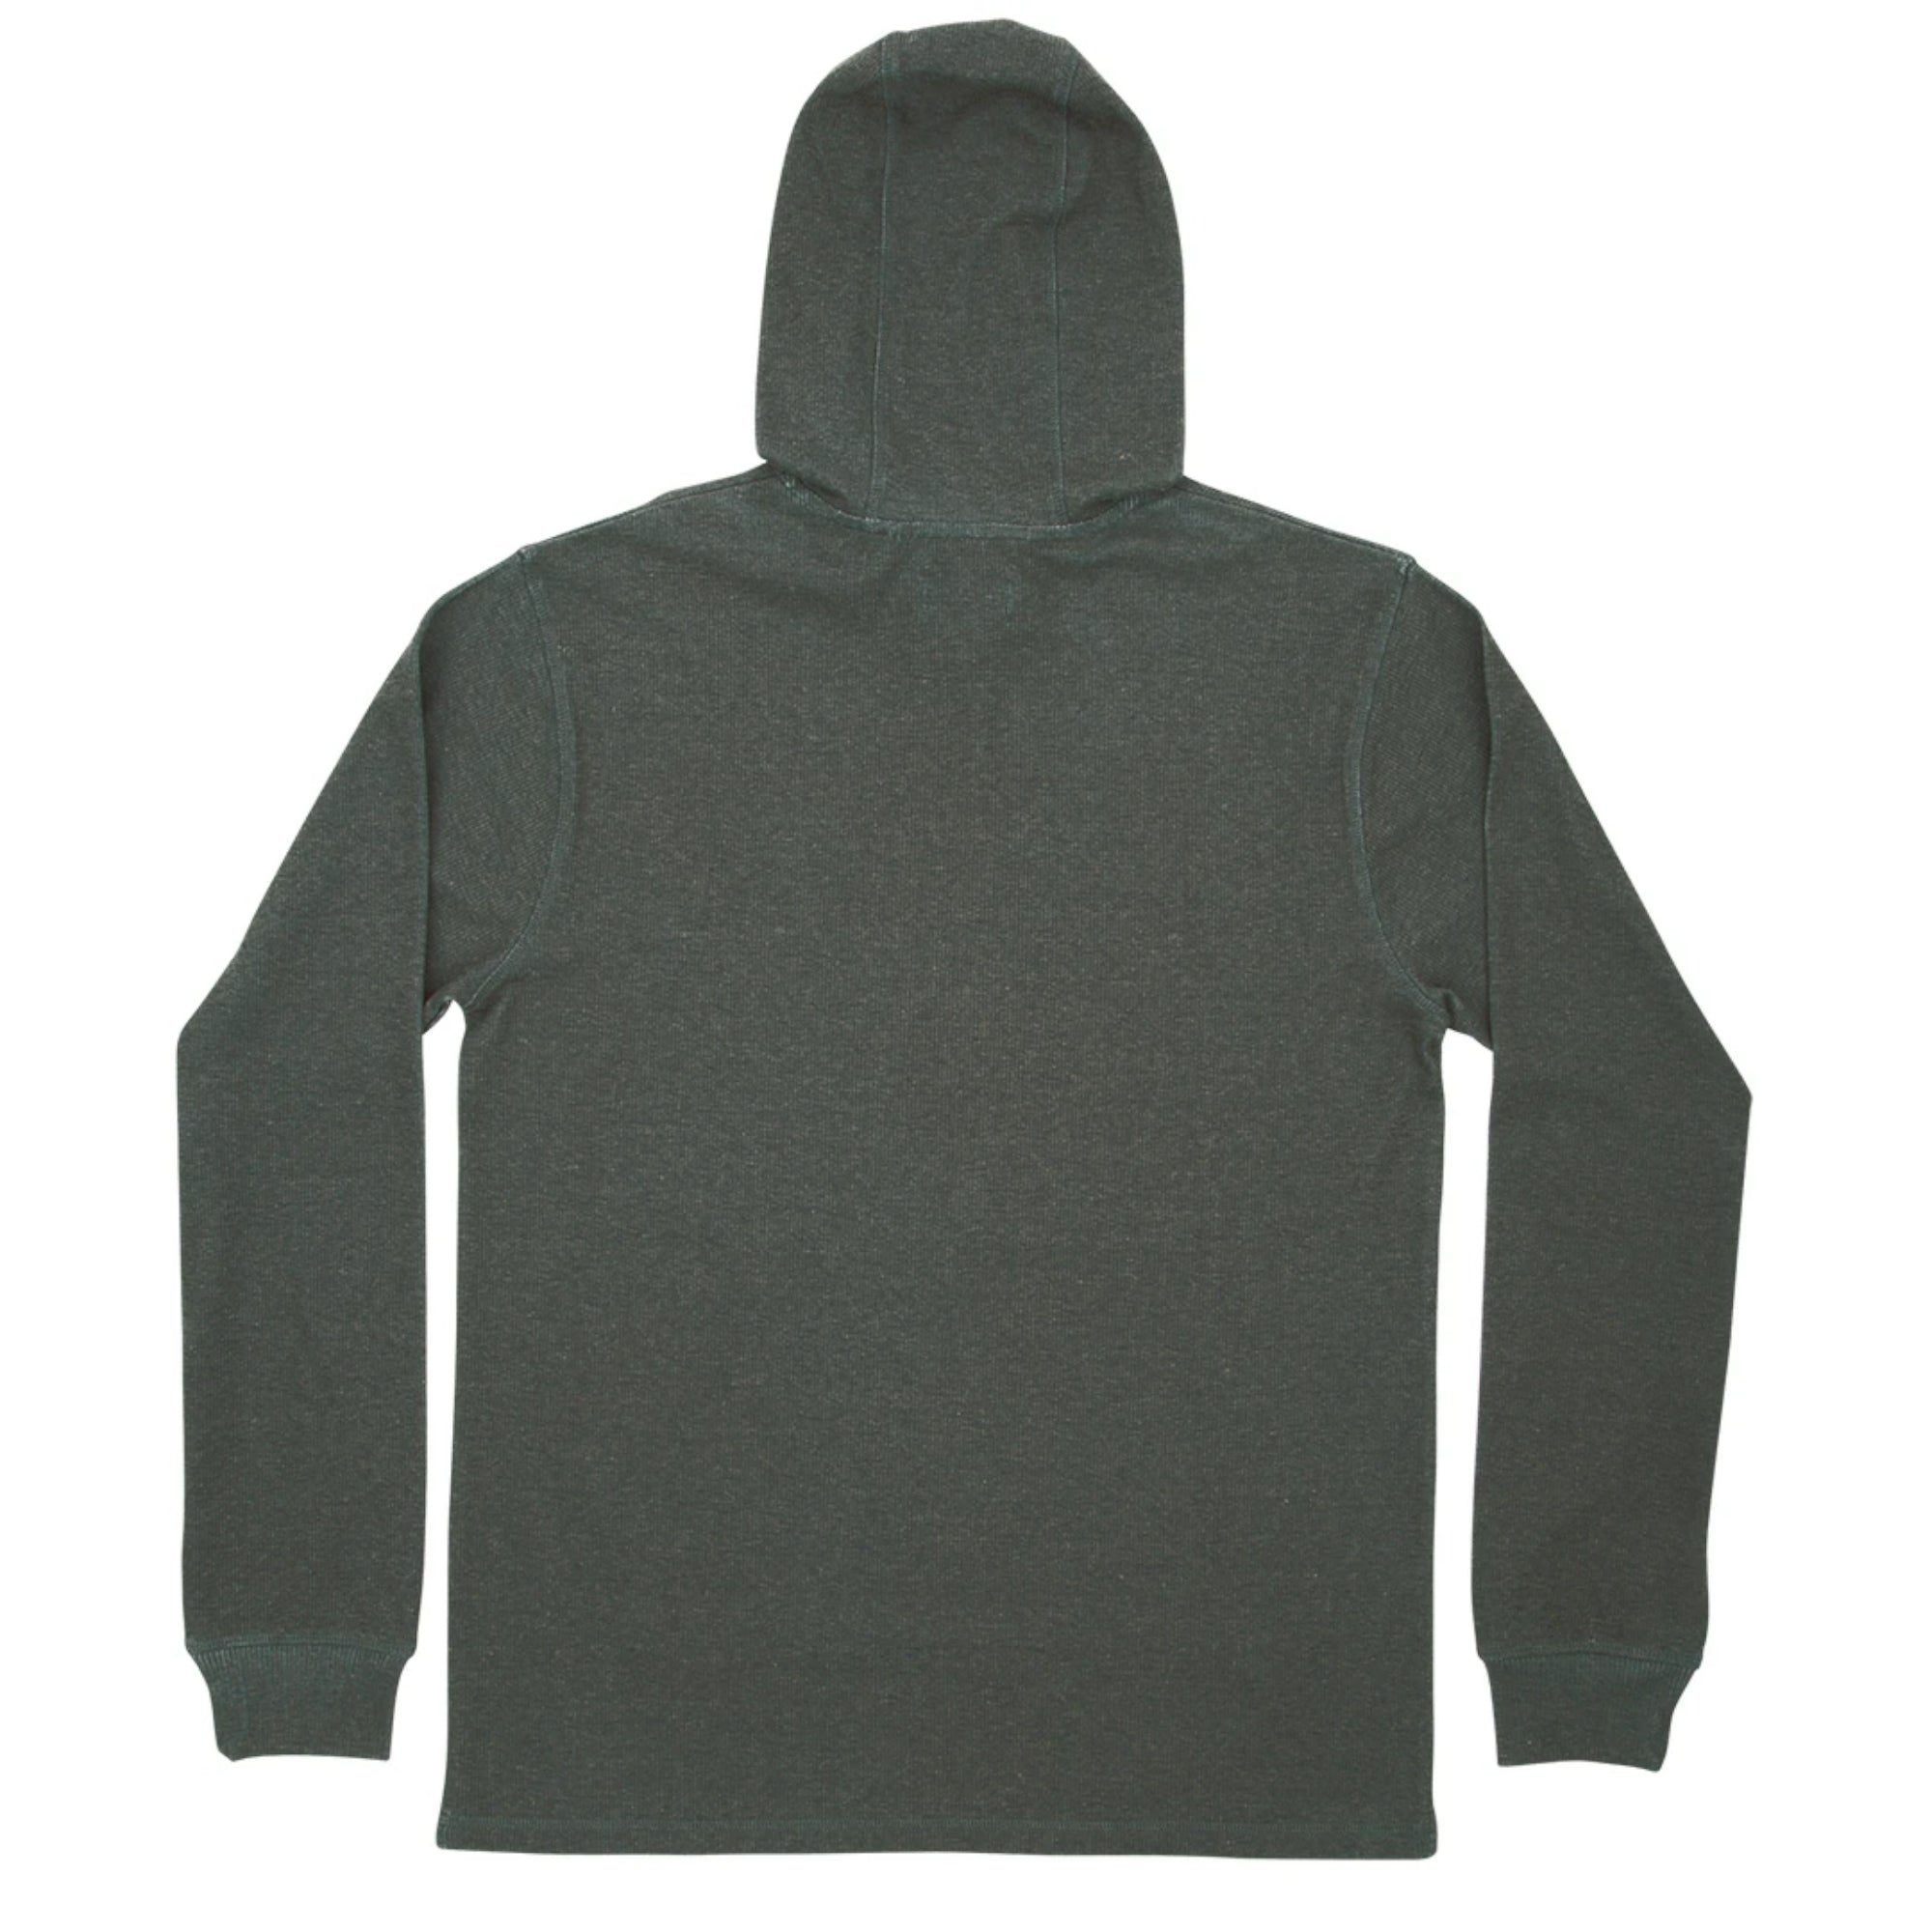 Salty Crew Dockman Thermal Pullover Men's Hoodie